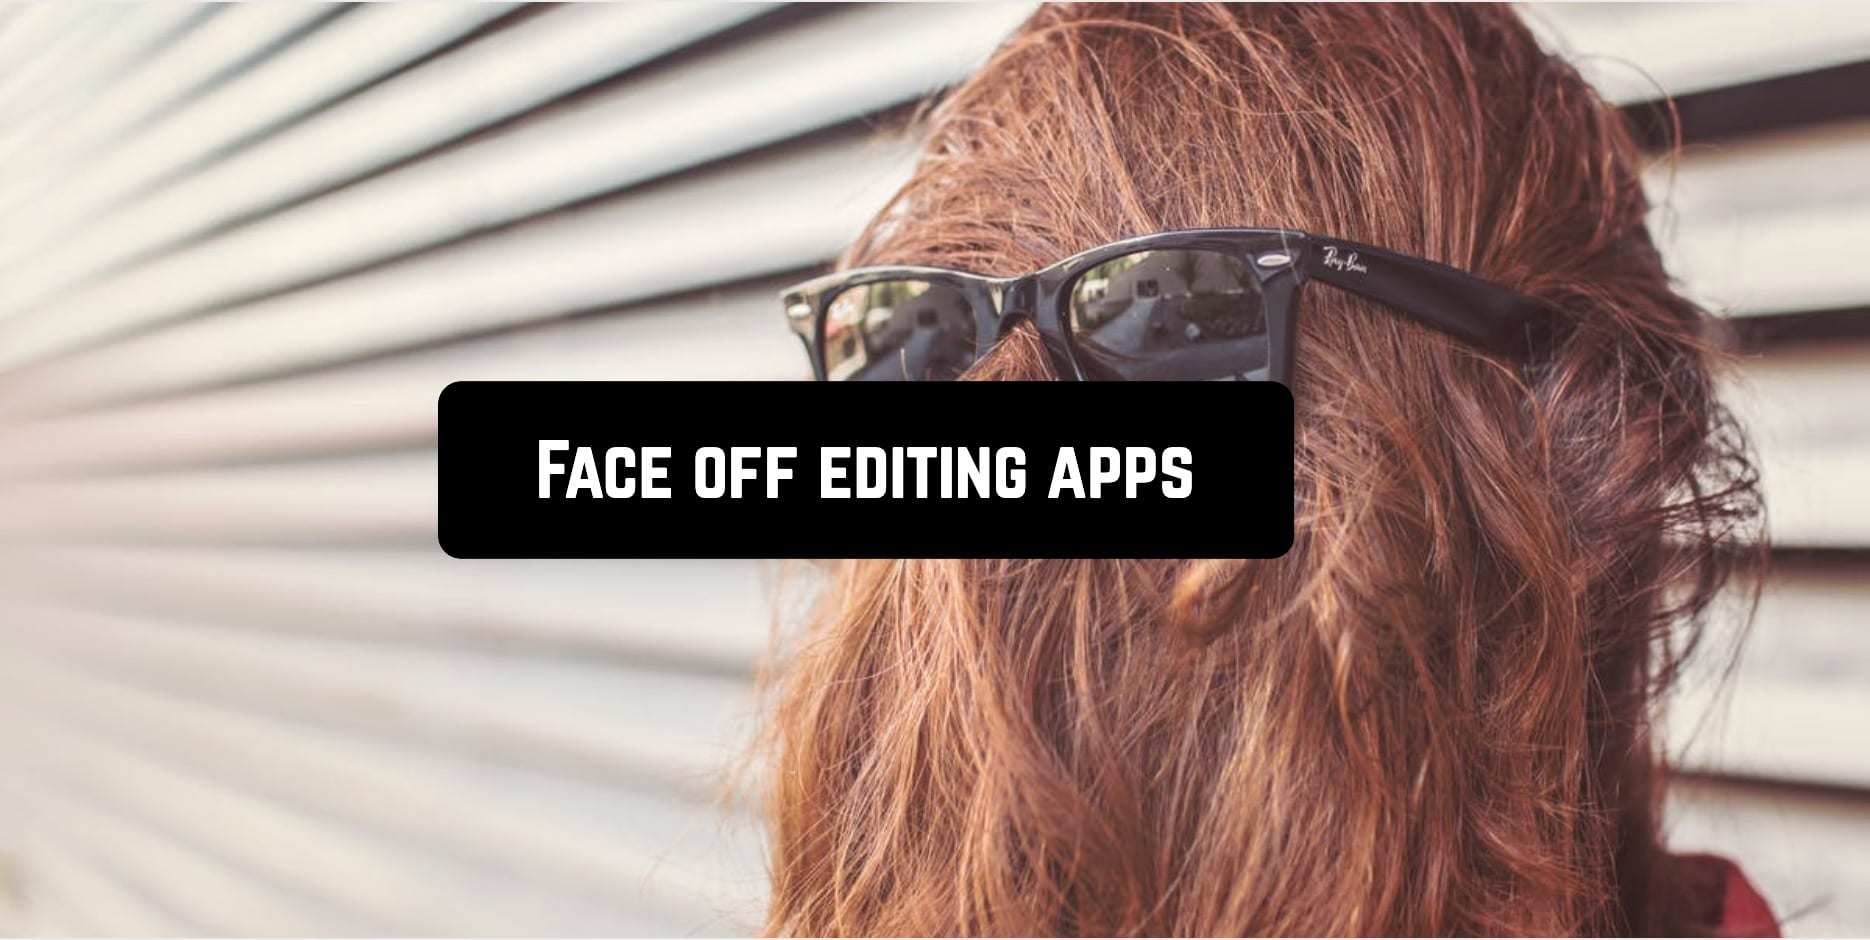 Face off editing apps